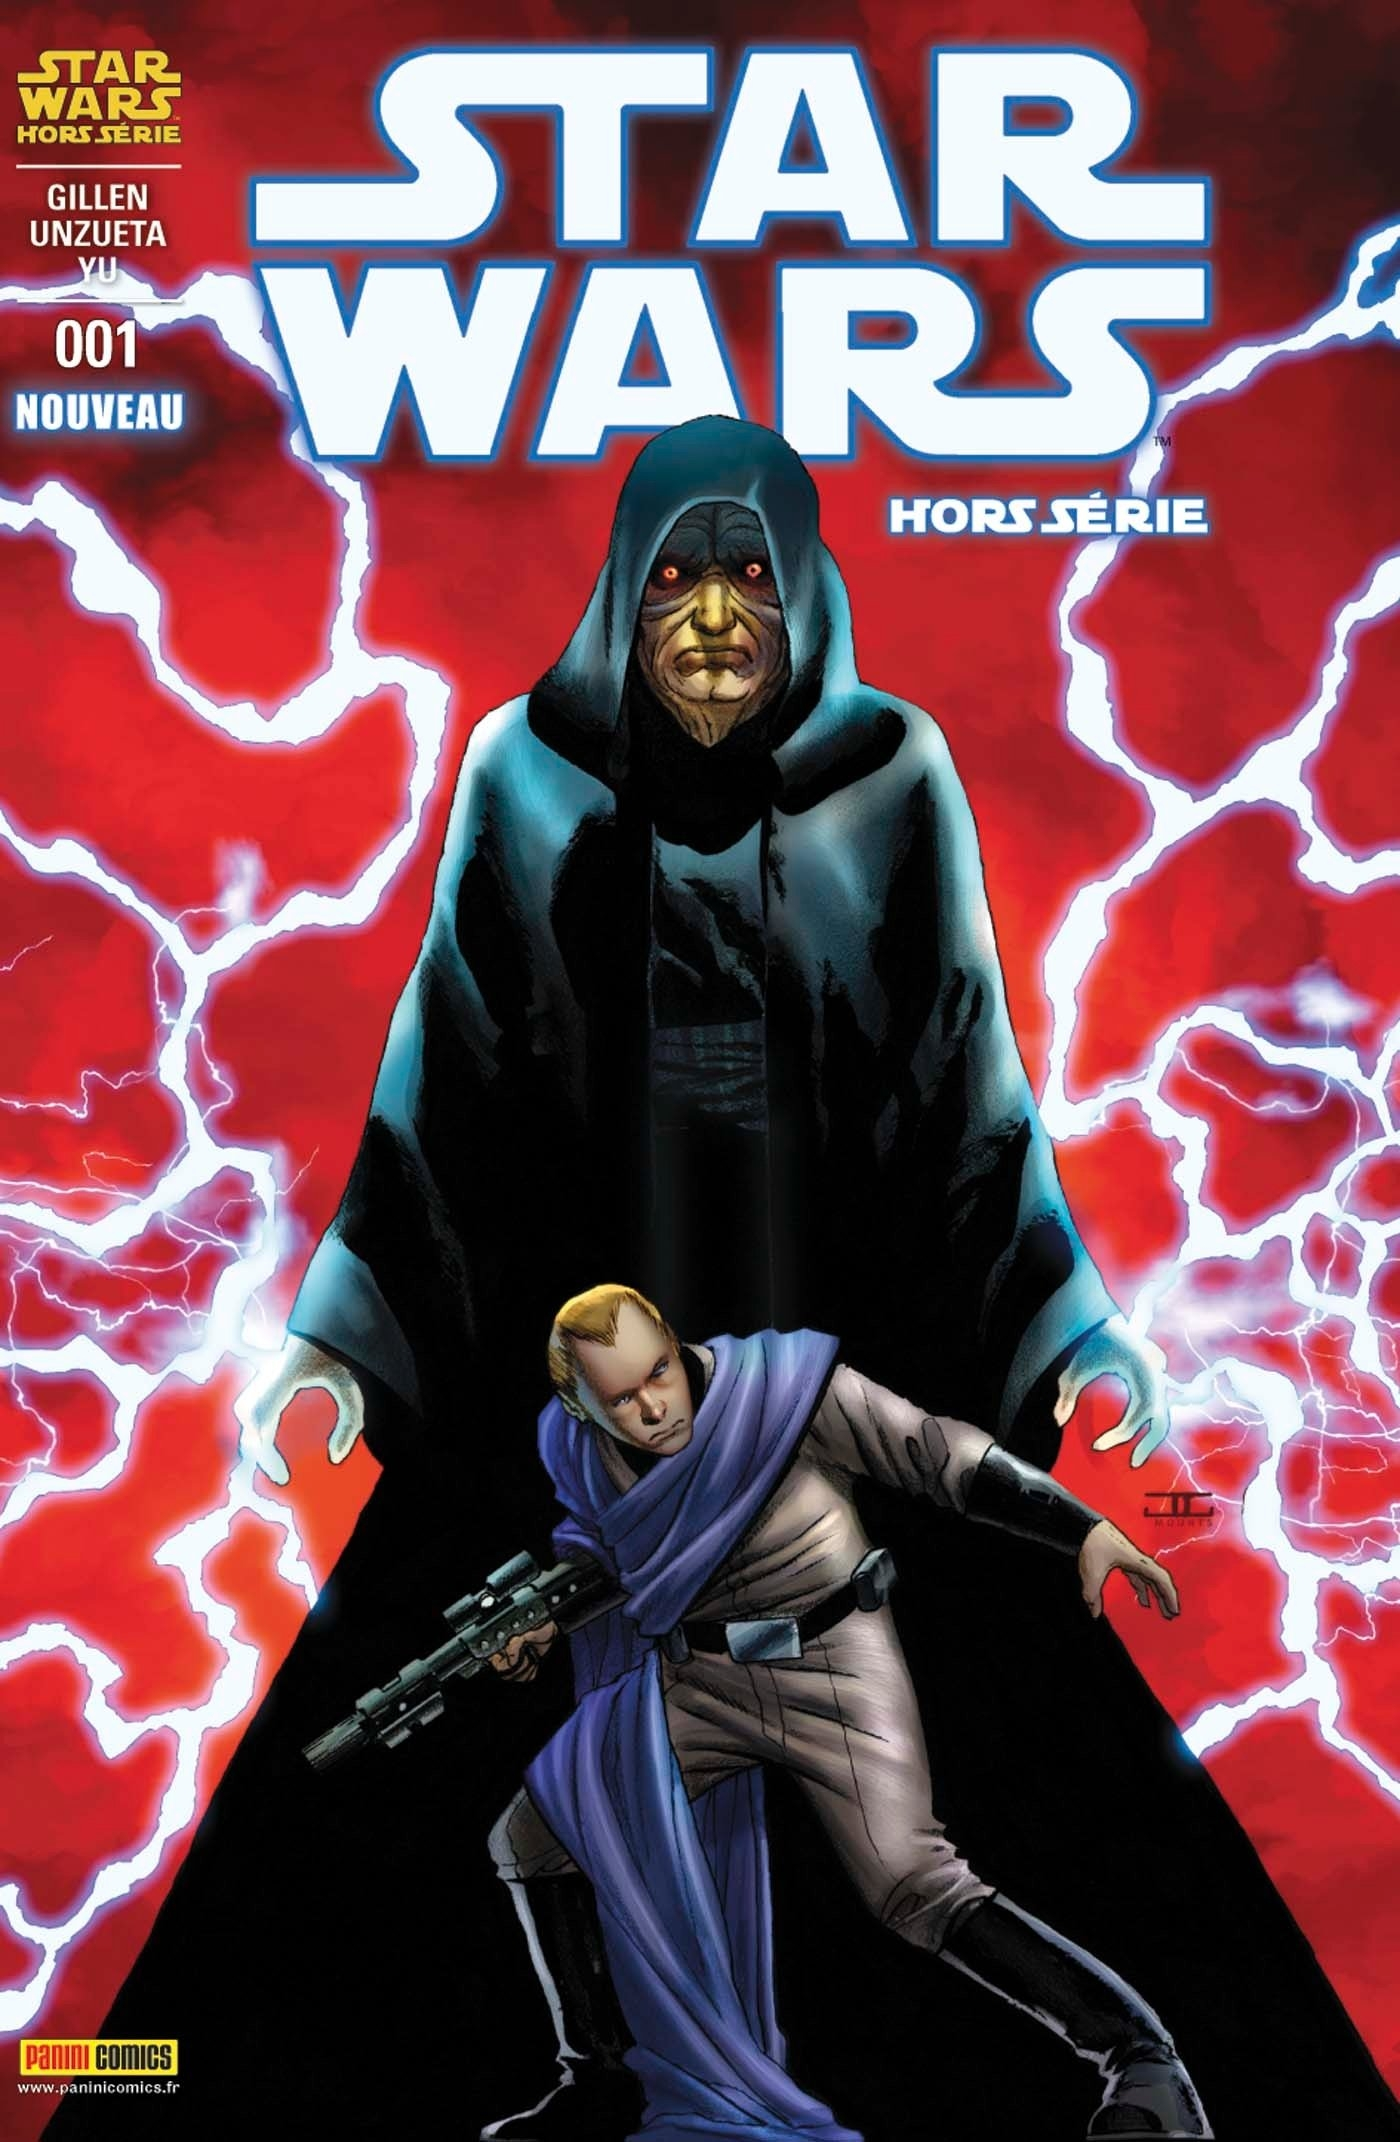 Star Wars HS nº 1 (couverture 1/2) (VF)